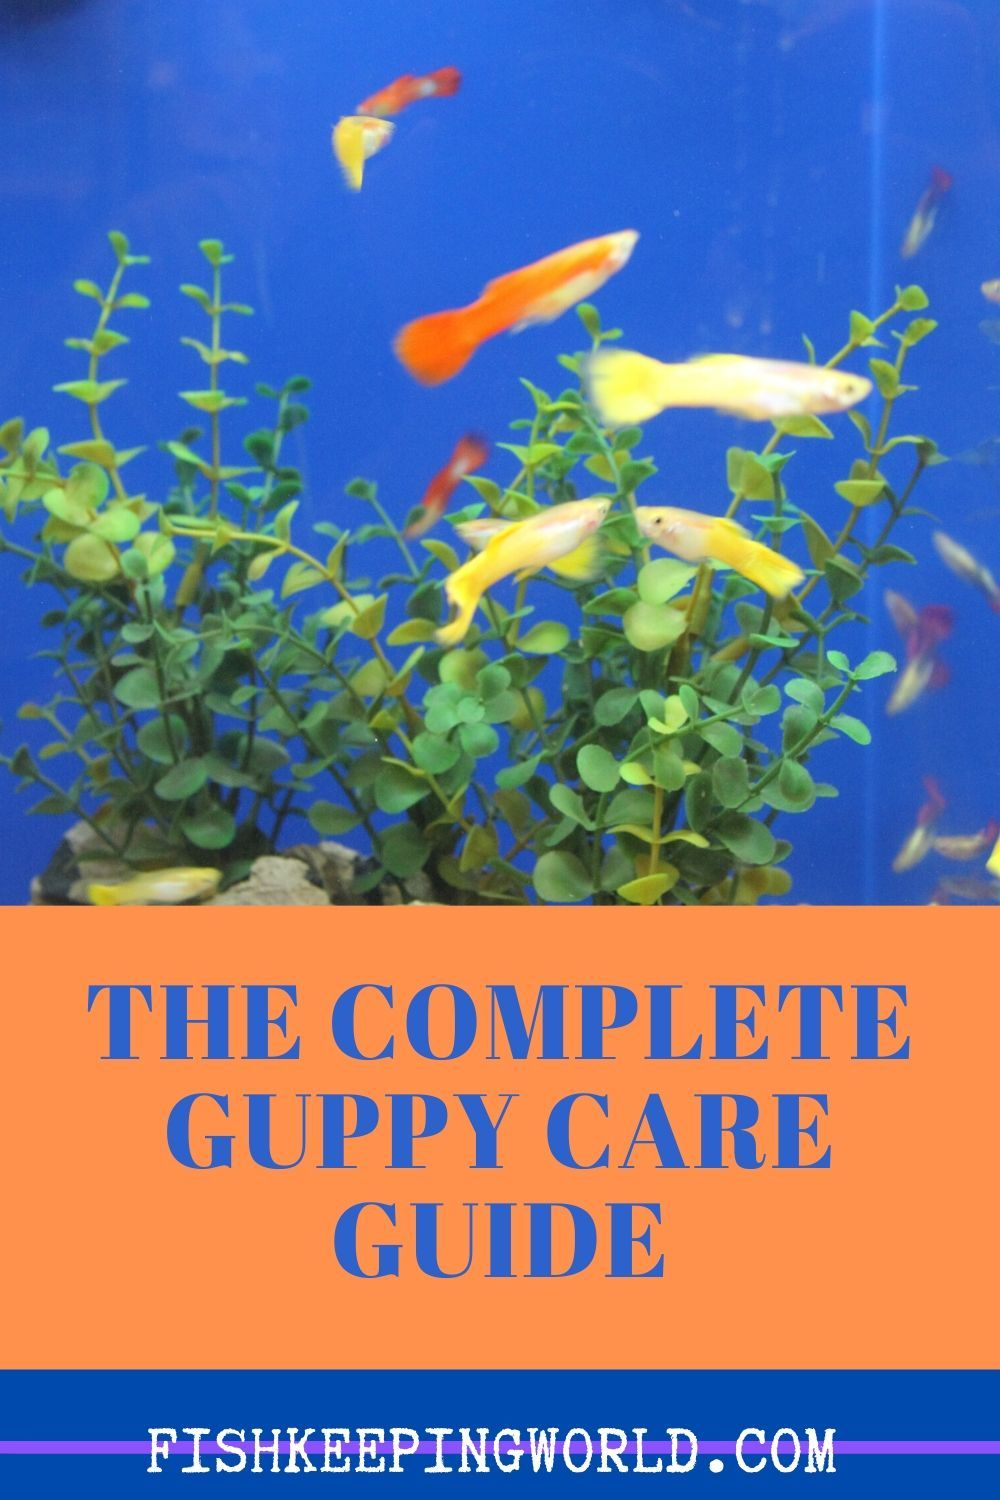 The Complete Guppy Care Guide 2020 Breeding Tank Requirements Fancy Varieties In 2020 Guppy Guppy Fish Tropical Fish Aquarium